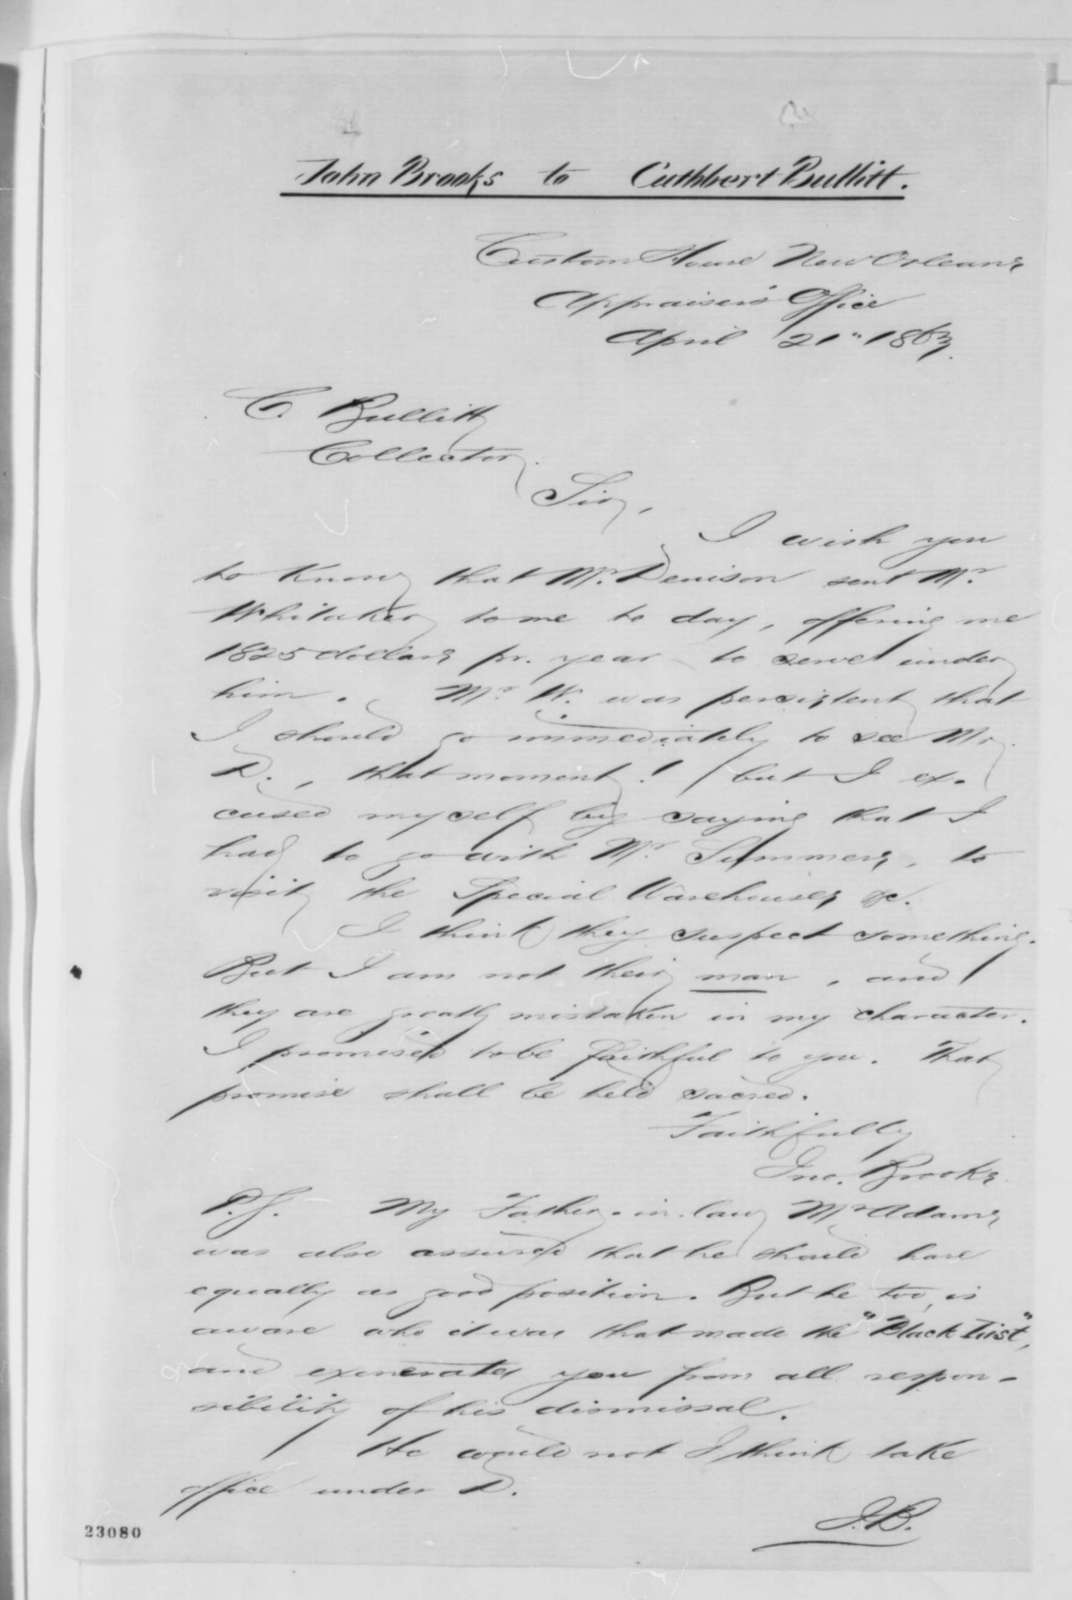 Cuthbert Bullitt to Salmon P. Chase, Tuesday, July 21, 1863  (Conduct at New Orleans customs house; copies of John Brooks to Cuthbert, April 21, 1863 and George S. Denison to Cuthbert)